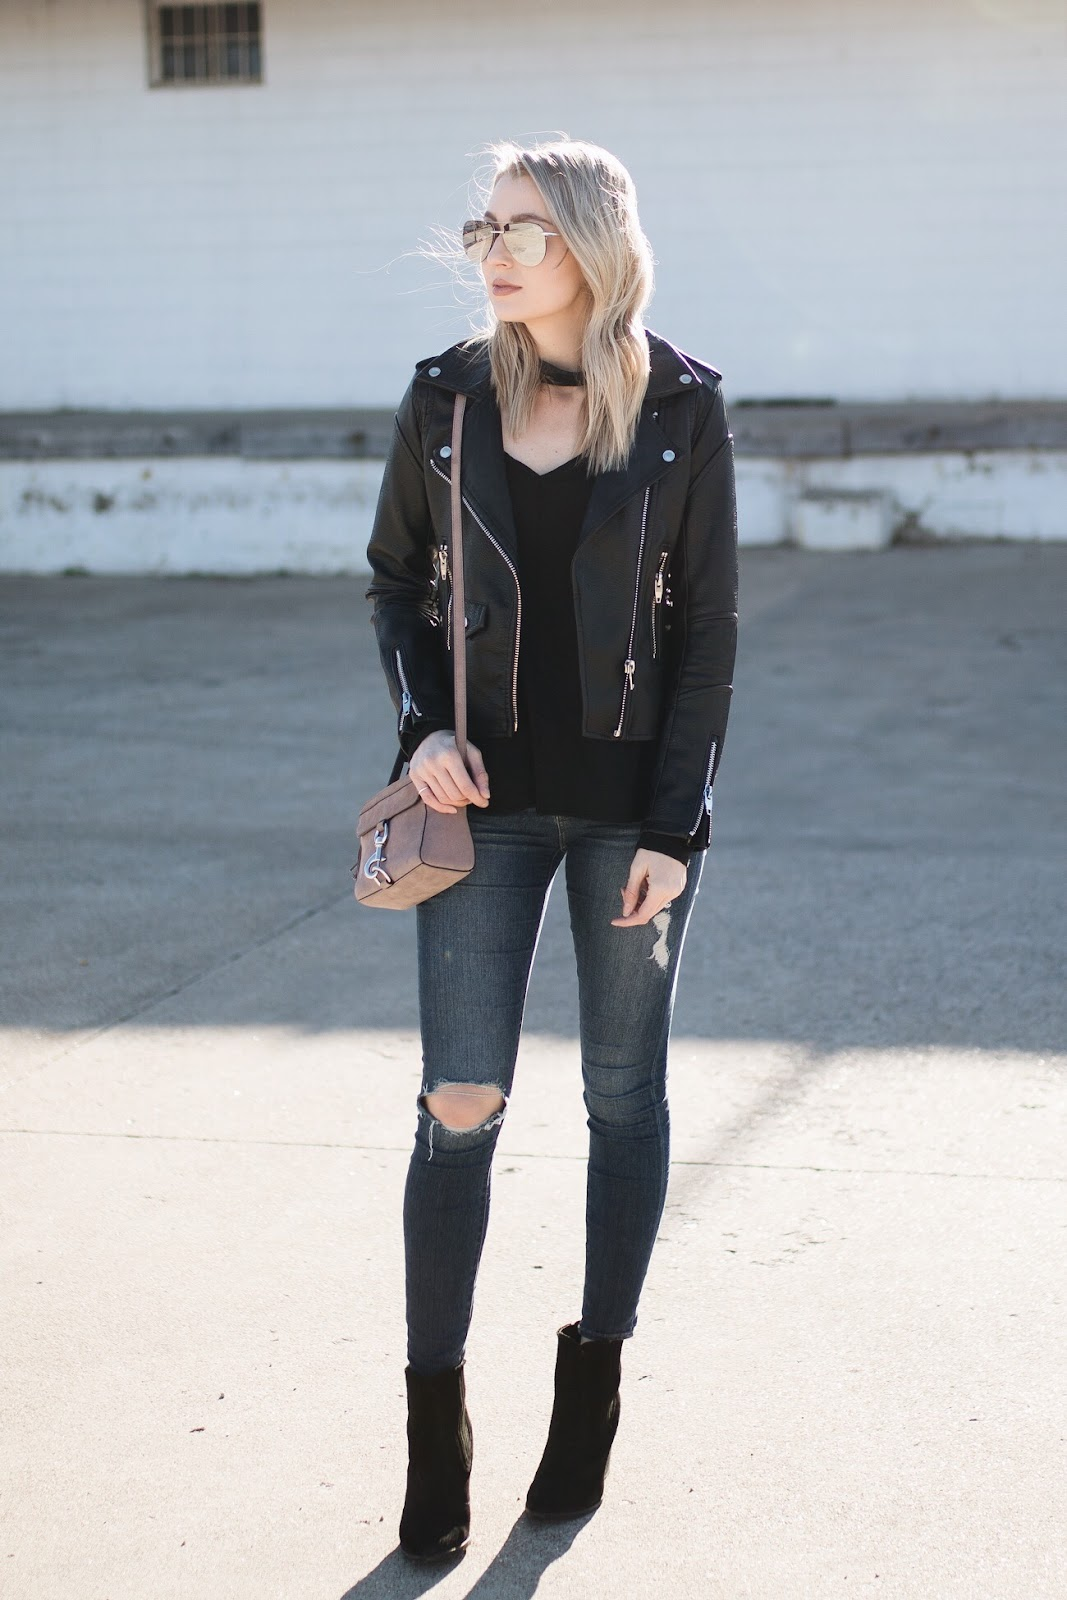 Faux leather jacket with distressed jeans